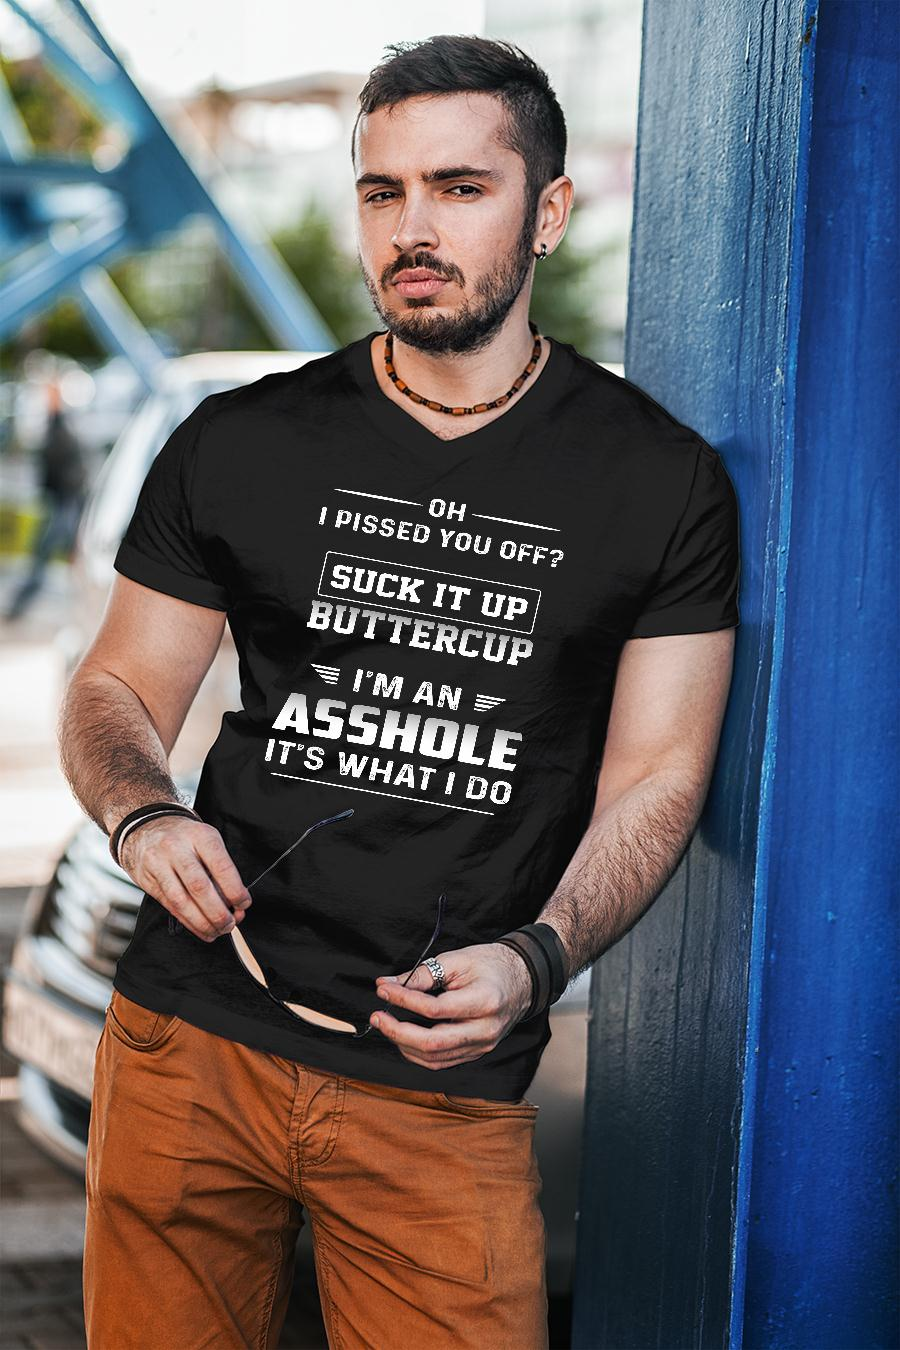 Oh pissed you off suck it up buttercup I'm an asshole It's what I do shirt unisex